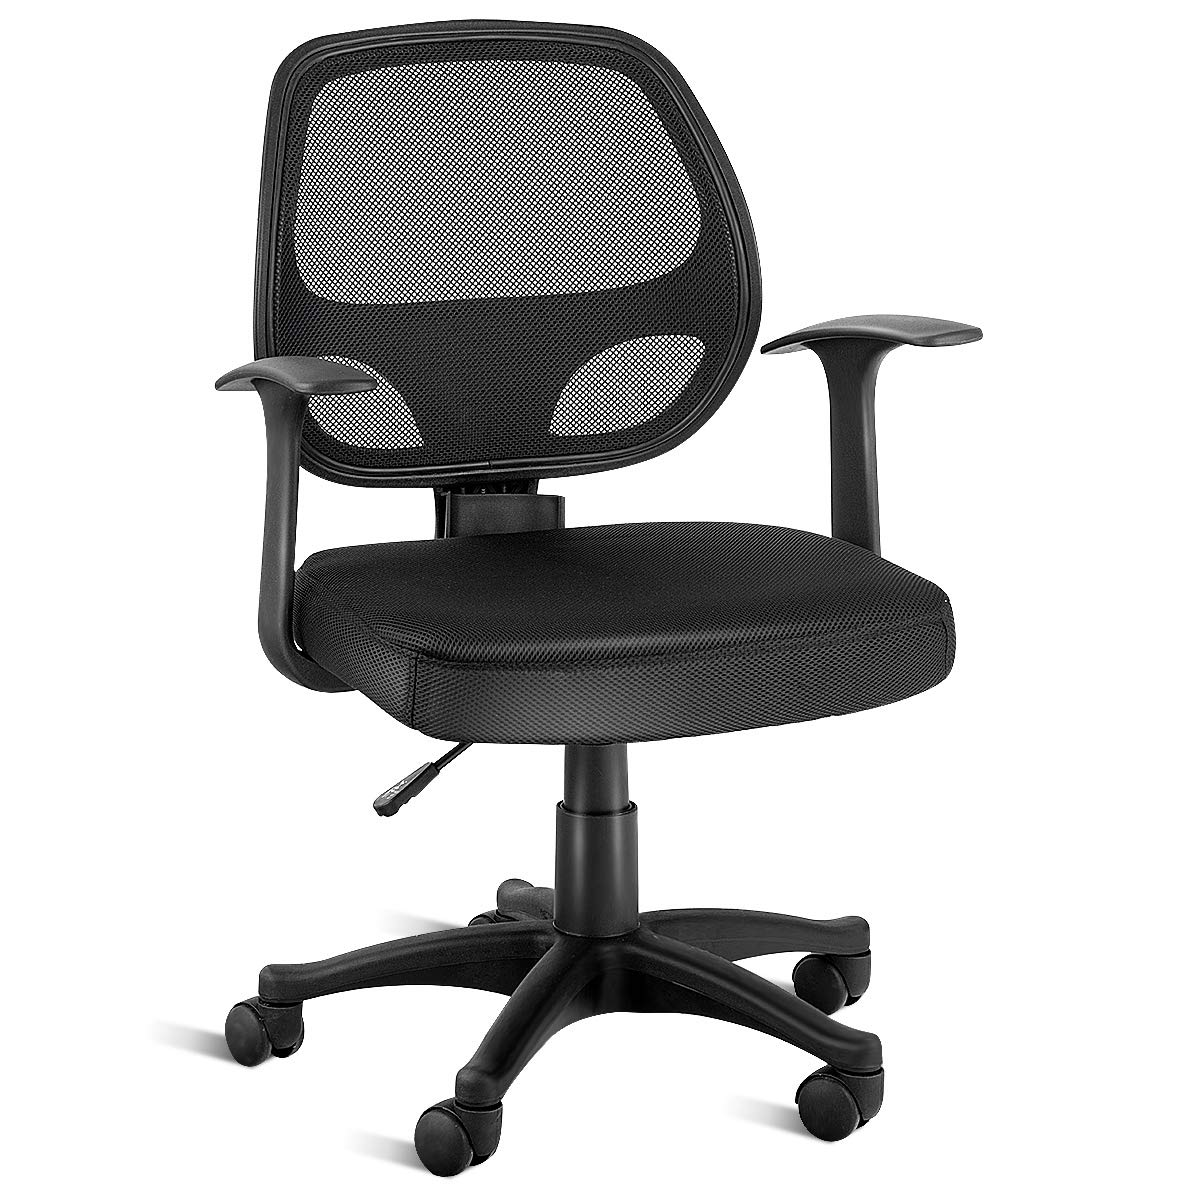 HAPPYGRILL Mid-Back Task Chair with Swivel Casters and Armrests Seat Height Adjustable Ergonomic Executive Mesh Office Chair (Black) by HAPPYGRILL